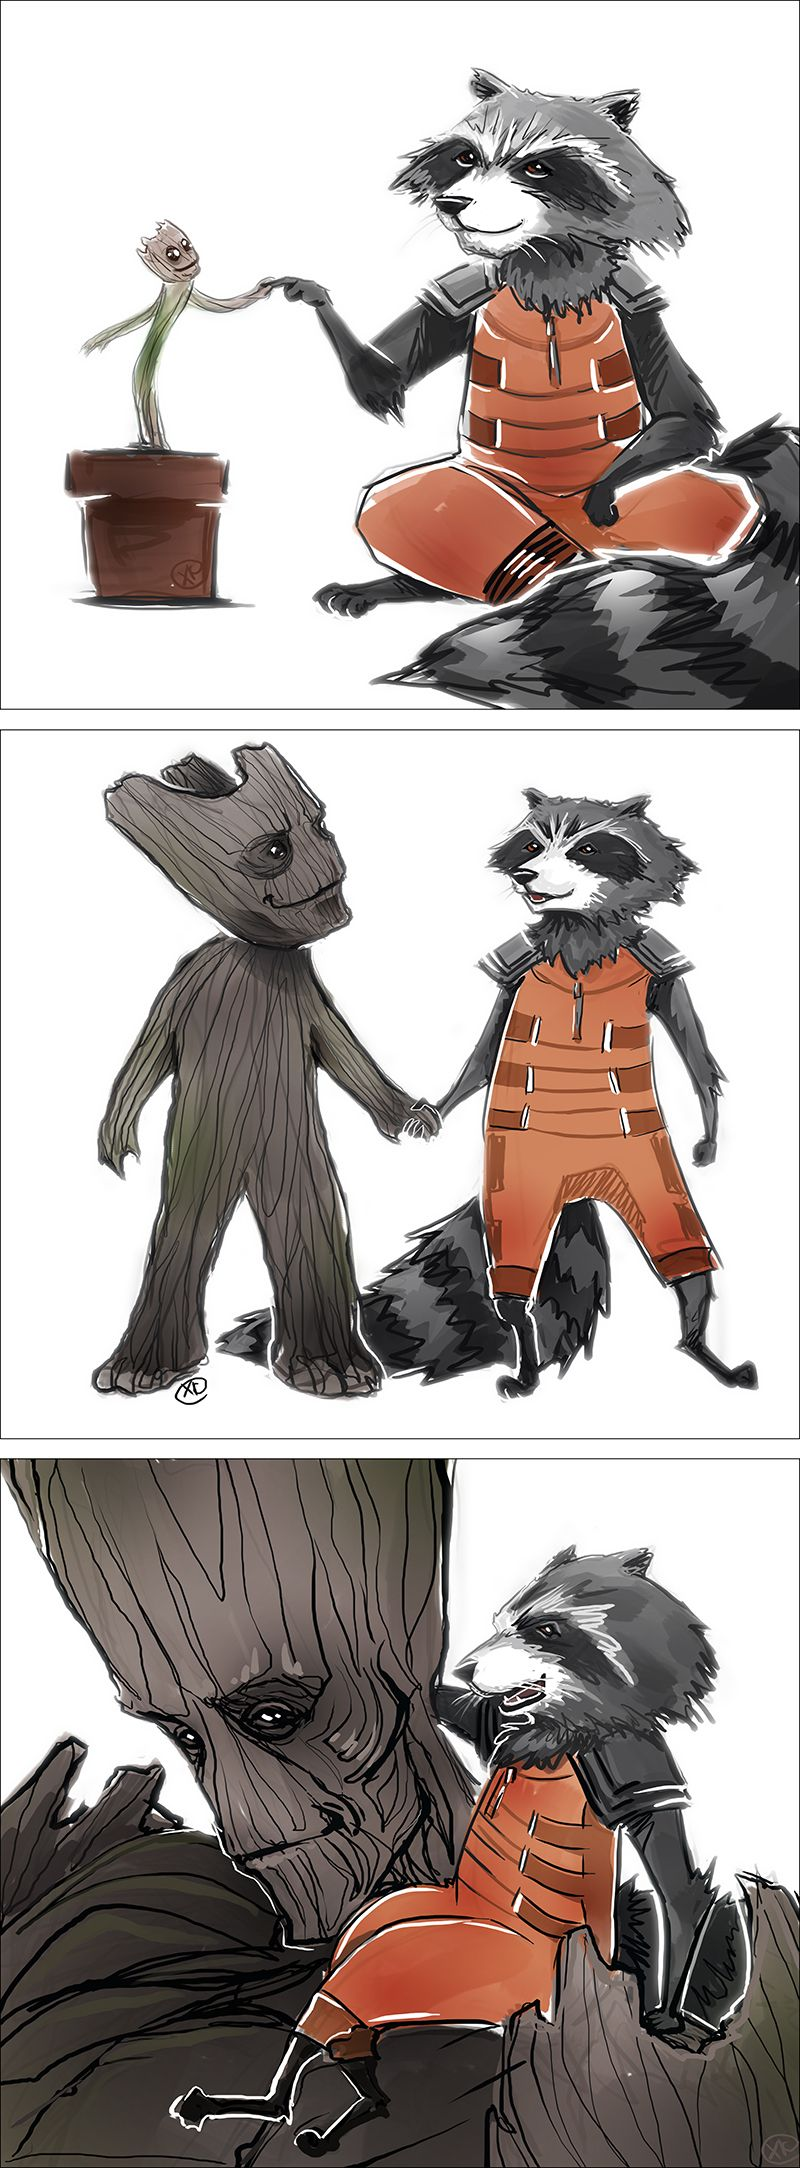 Star Lord And Rocket Raccoon By Timothygreenii On Deviantart: Grow Up By MaXKennedy.deviantart